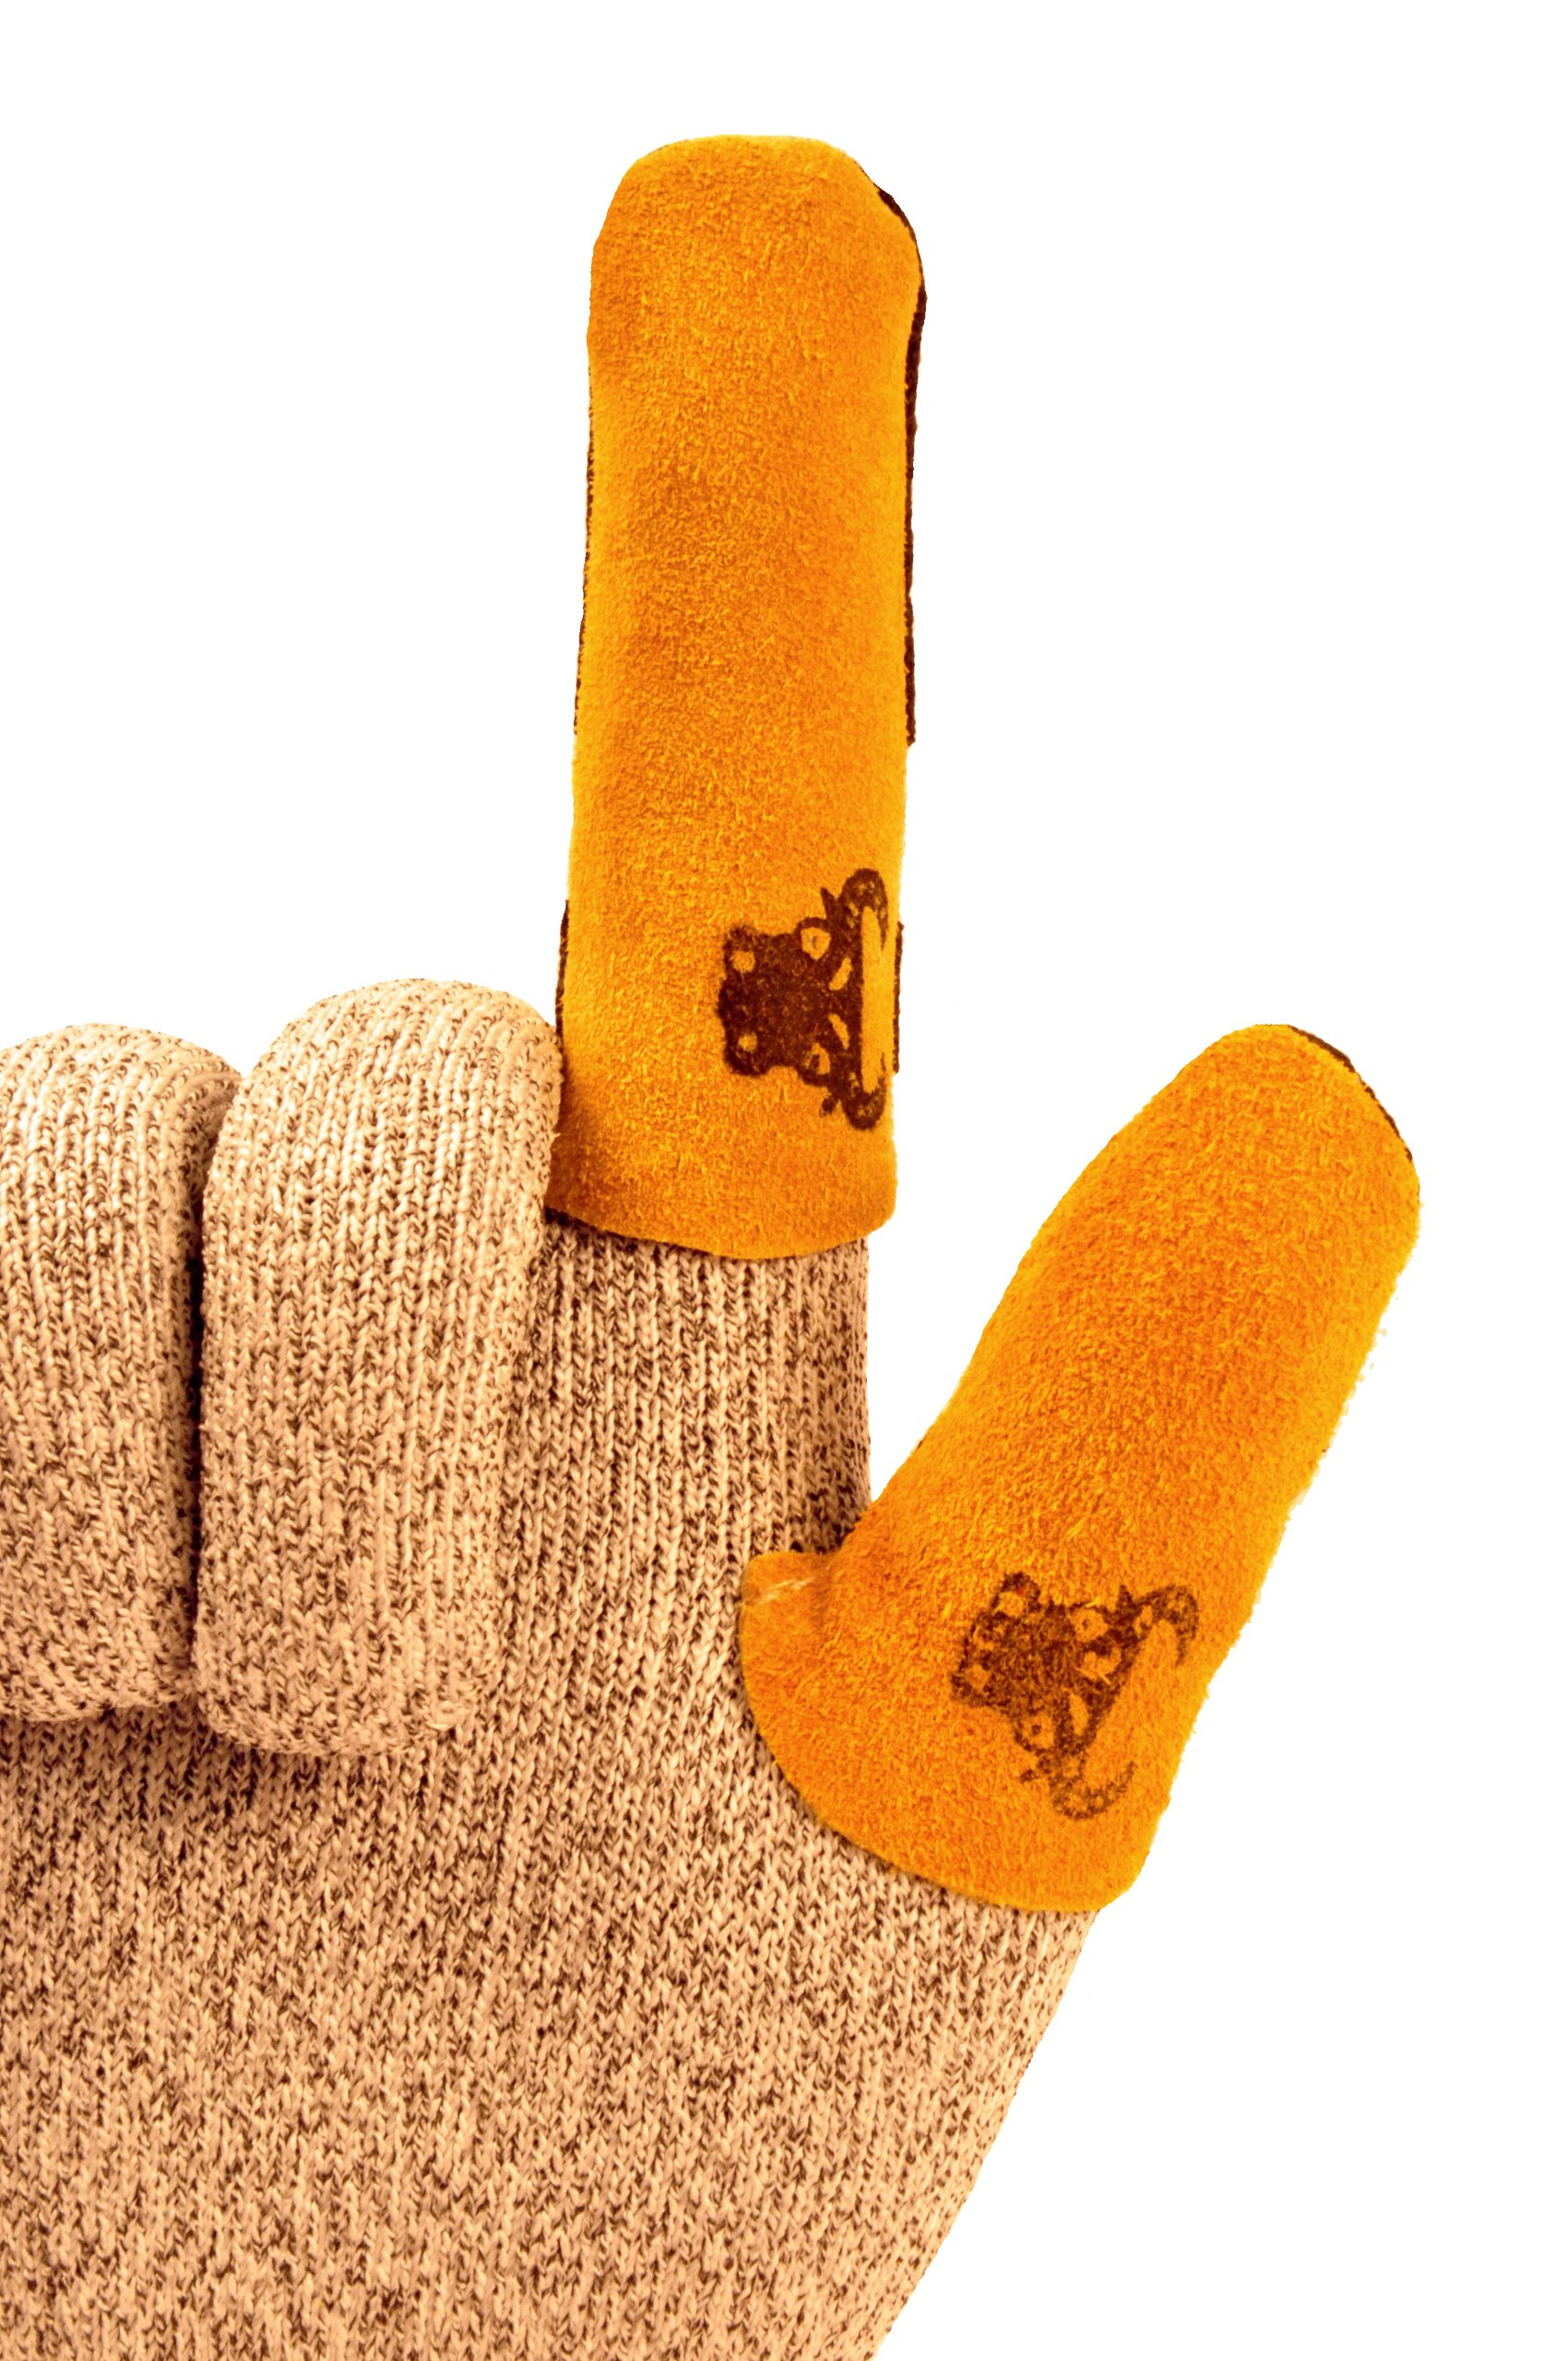 GF Gloves 8126S-100 Cowhide Leather Thumb Guard, Small, Yellow (Pack of 20) by GF Gloves